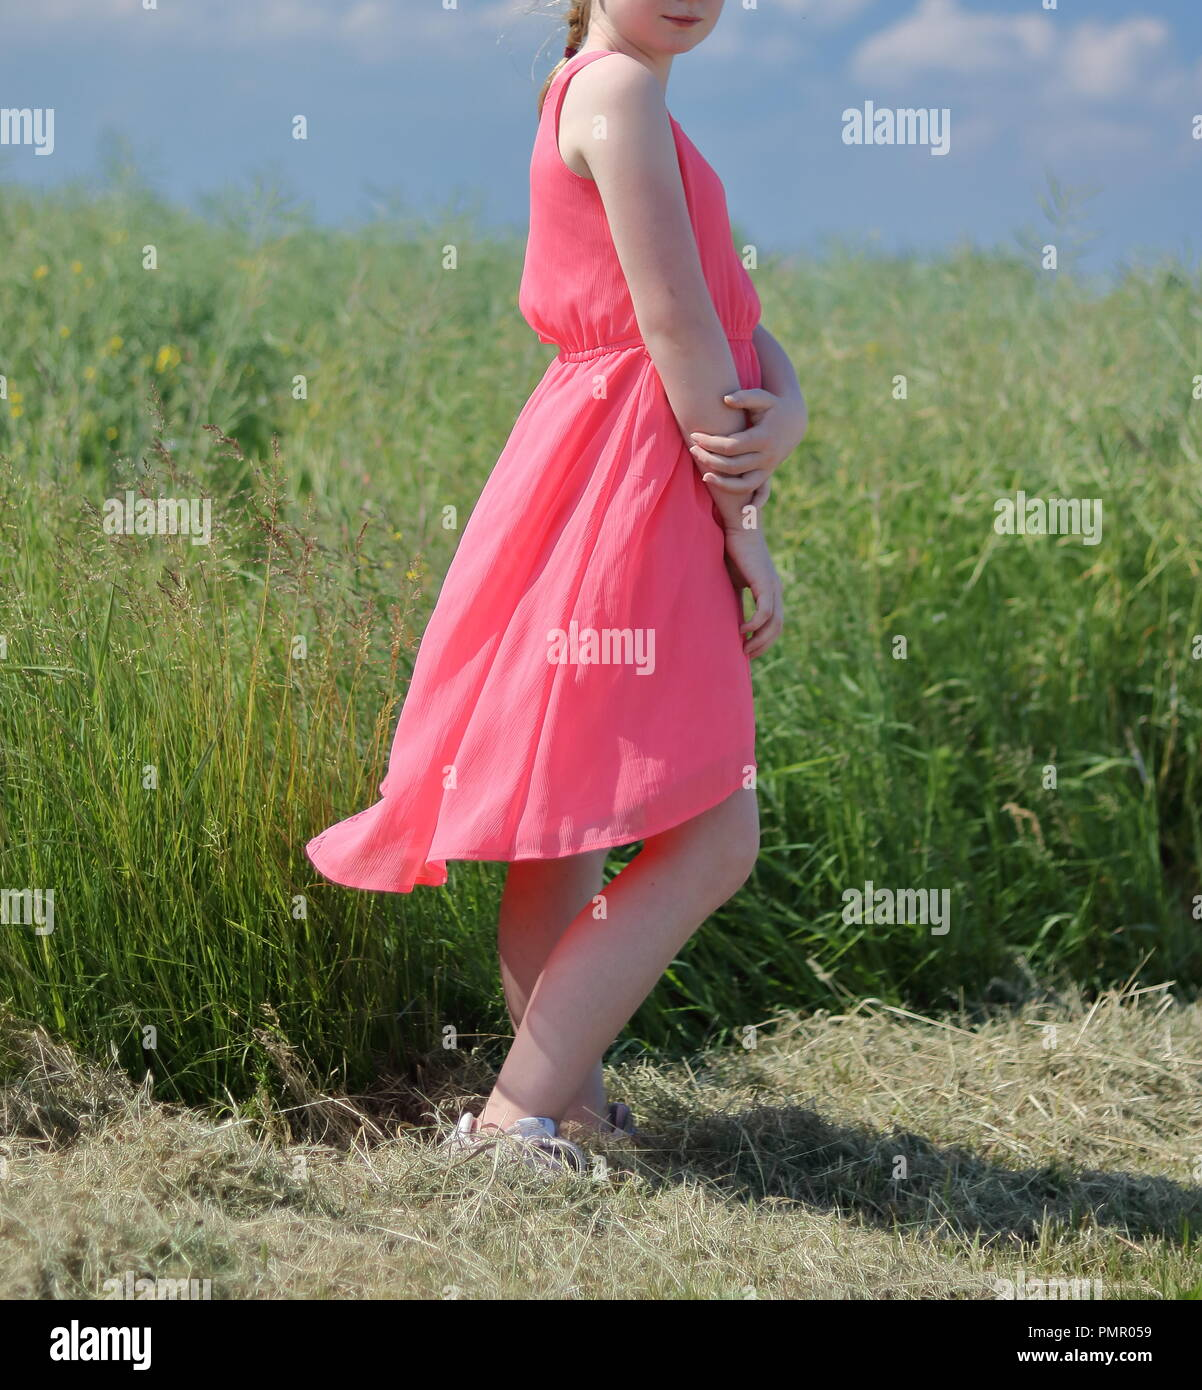 Young pretty girl (teenager, woman) stnads alone in green meadow, dressed in sleeveless pink summer dress, a bit windy. - Stock Image